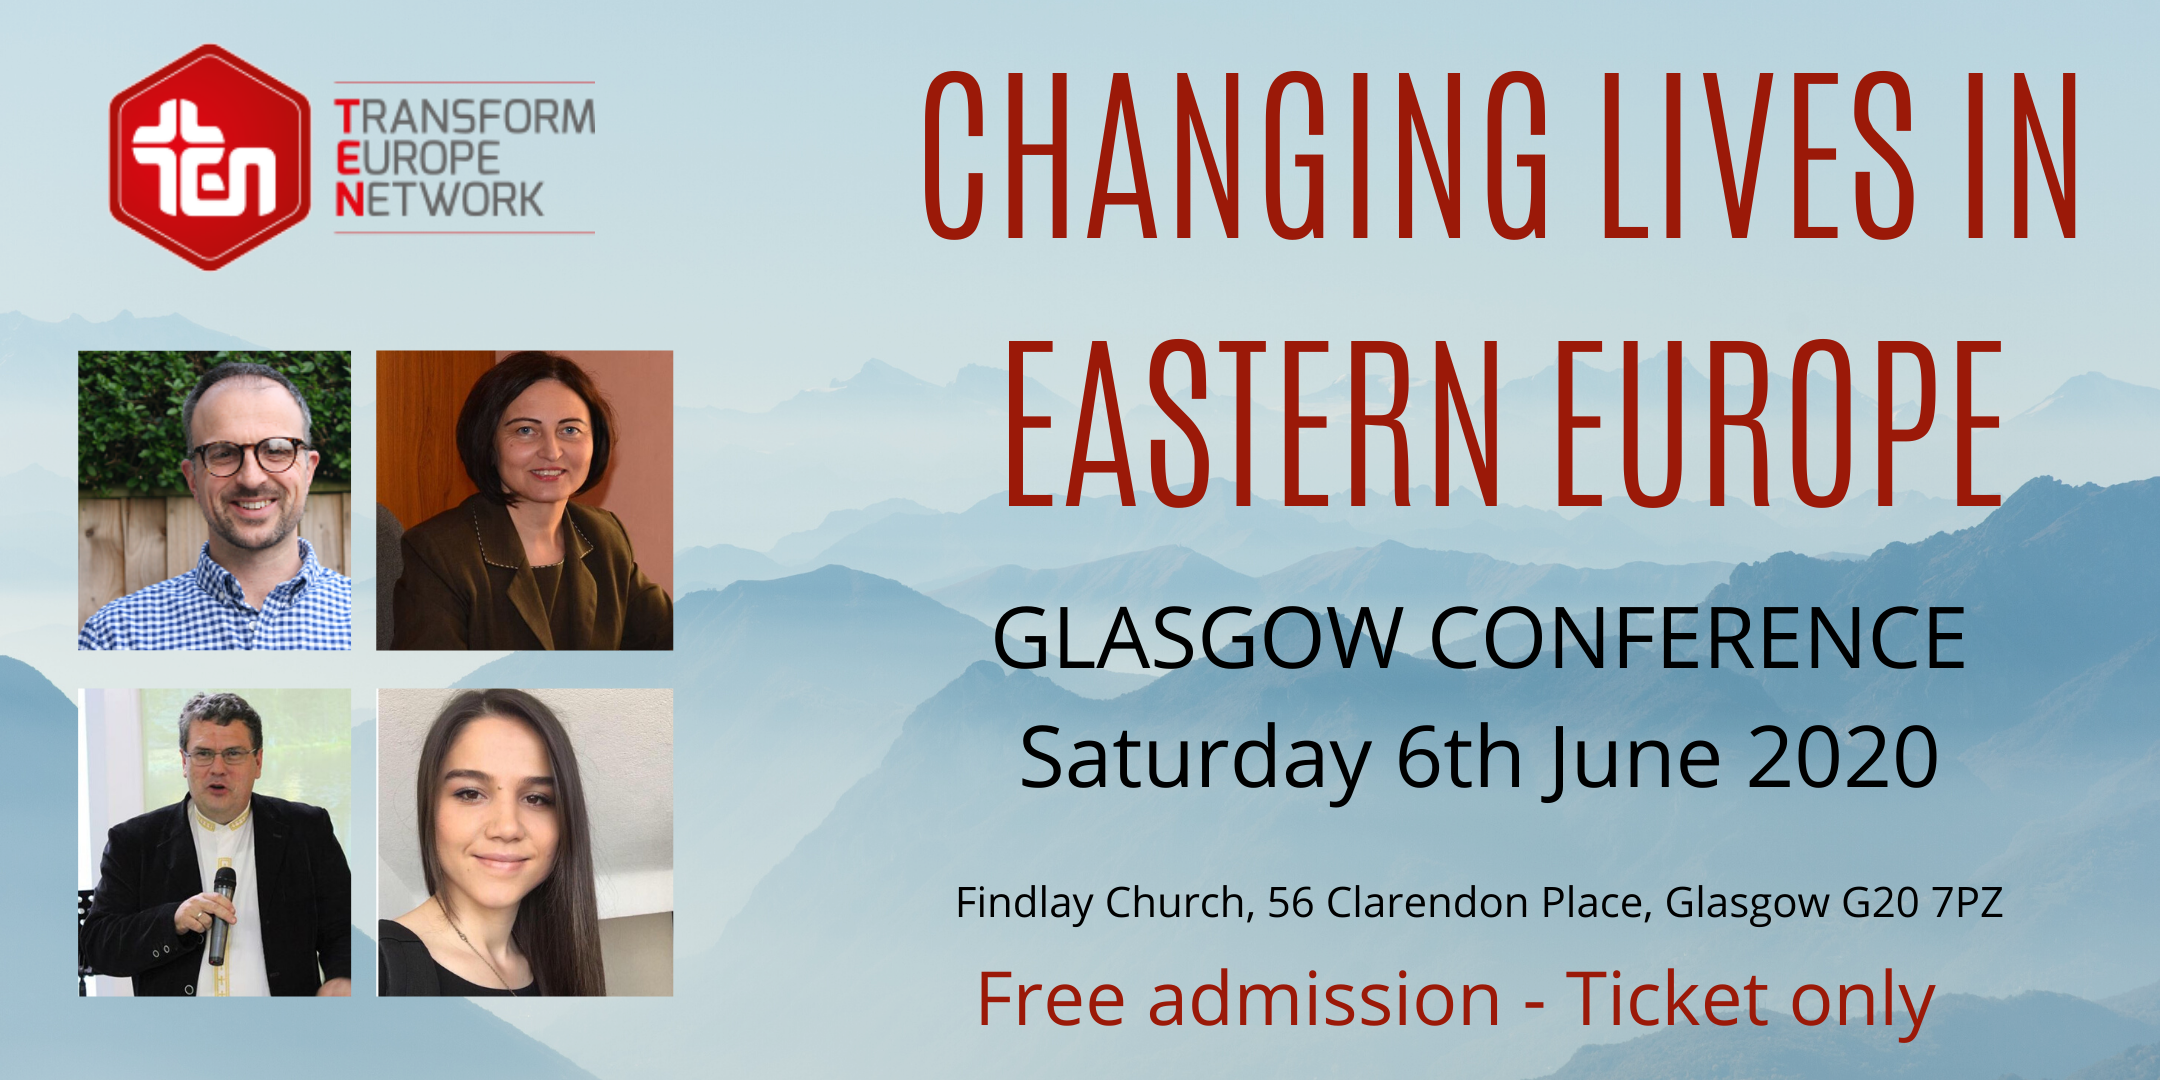 CHANGING LIVES IN EASTERN EUROPE - Christian mission conference in Glasgow